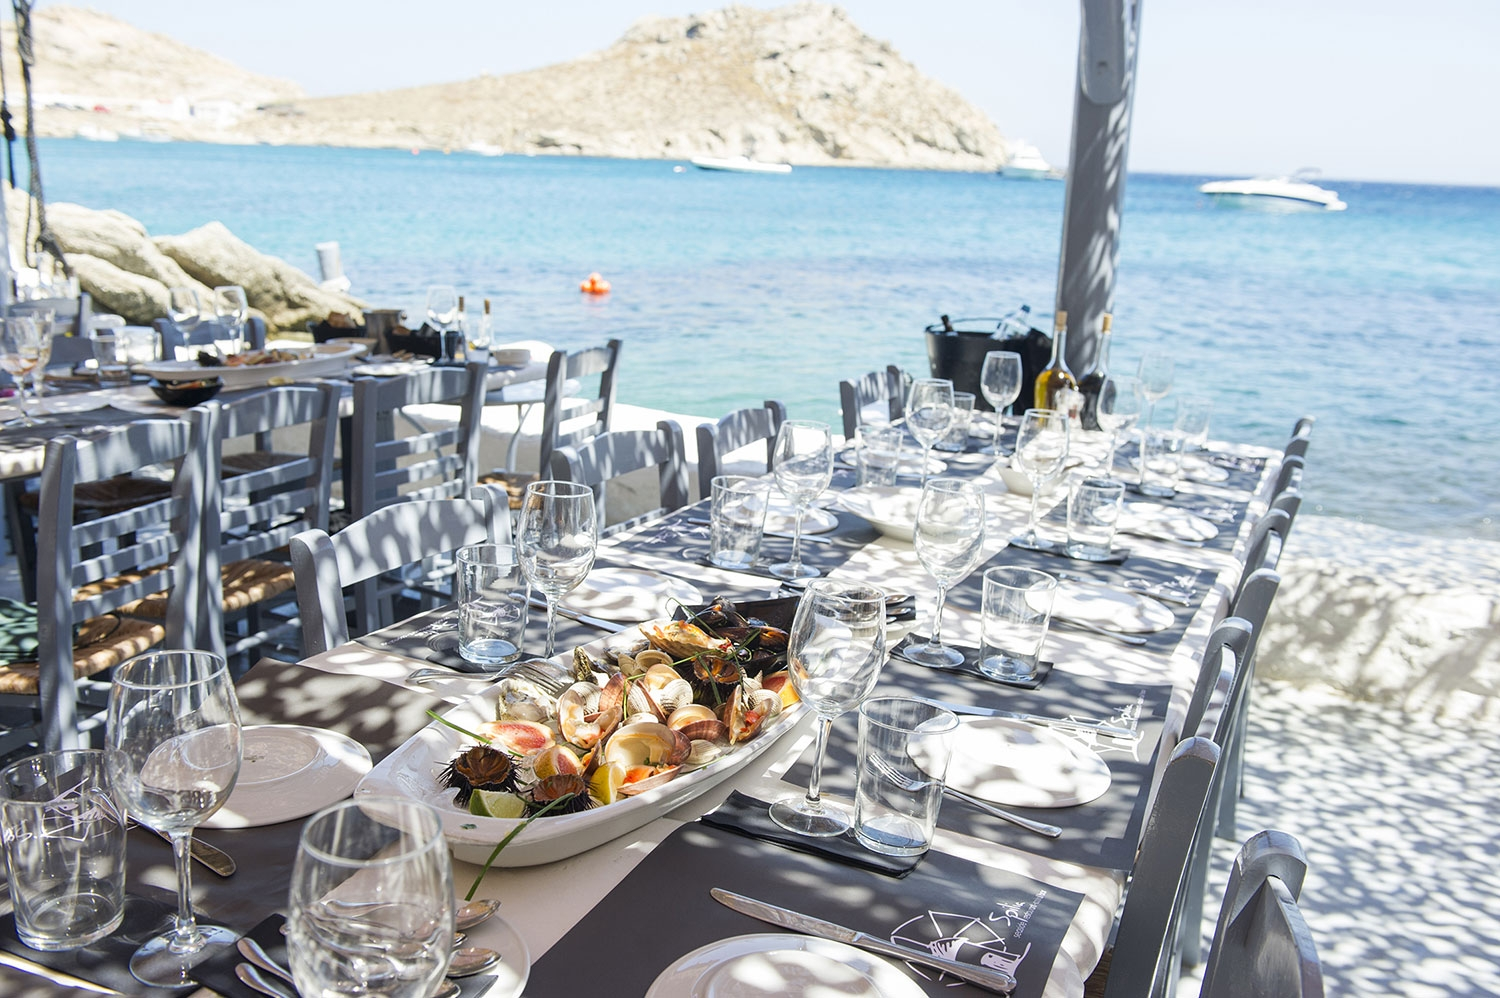 Our favourite restaurant in Mykonos, Spilia, offers long tables by the sea